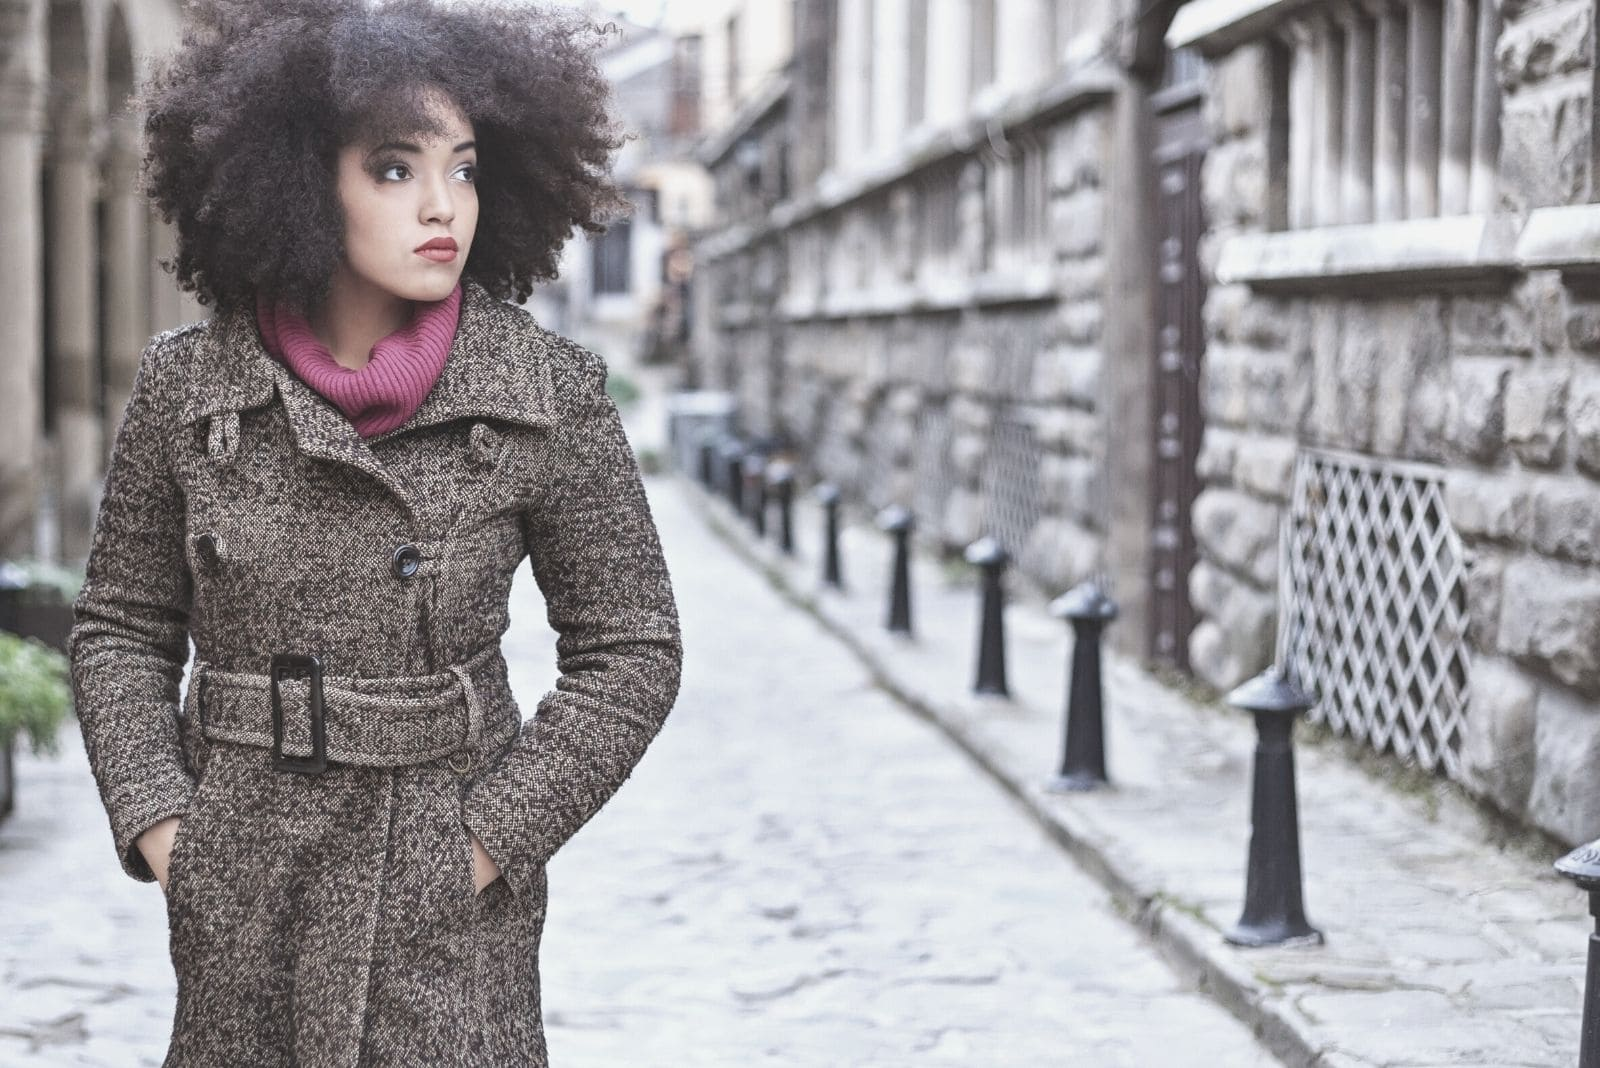 pensive woman walking on a narrow street with hands inside the pocket of her coat